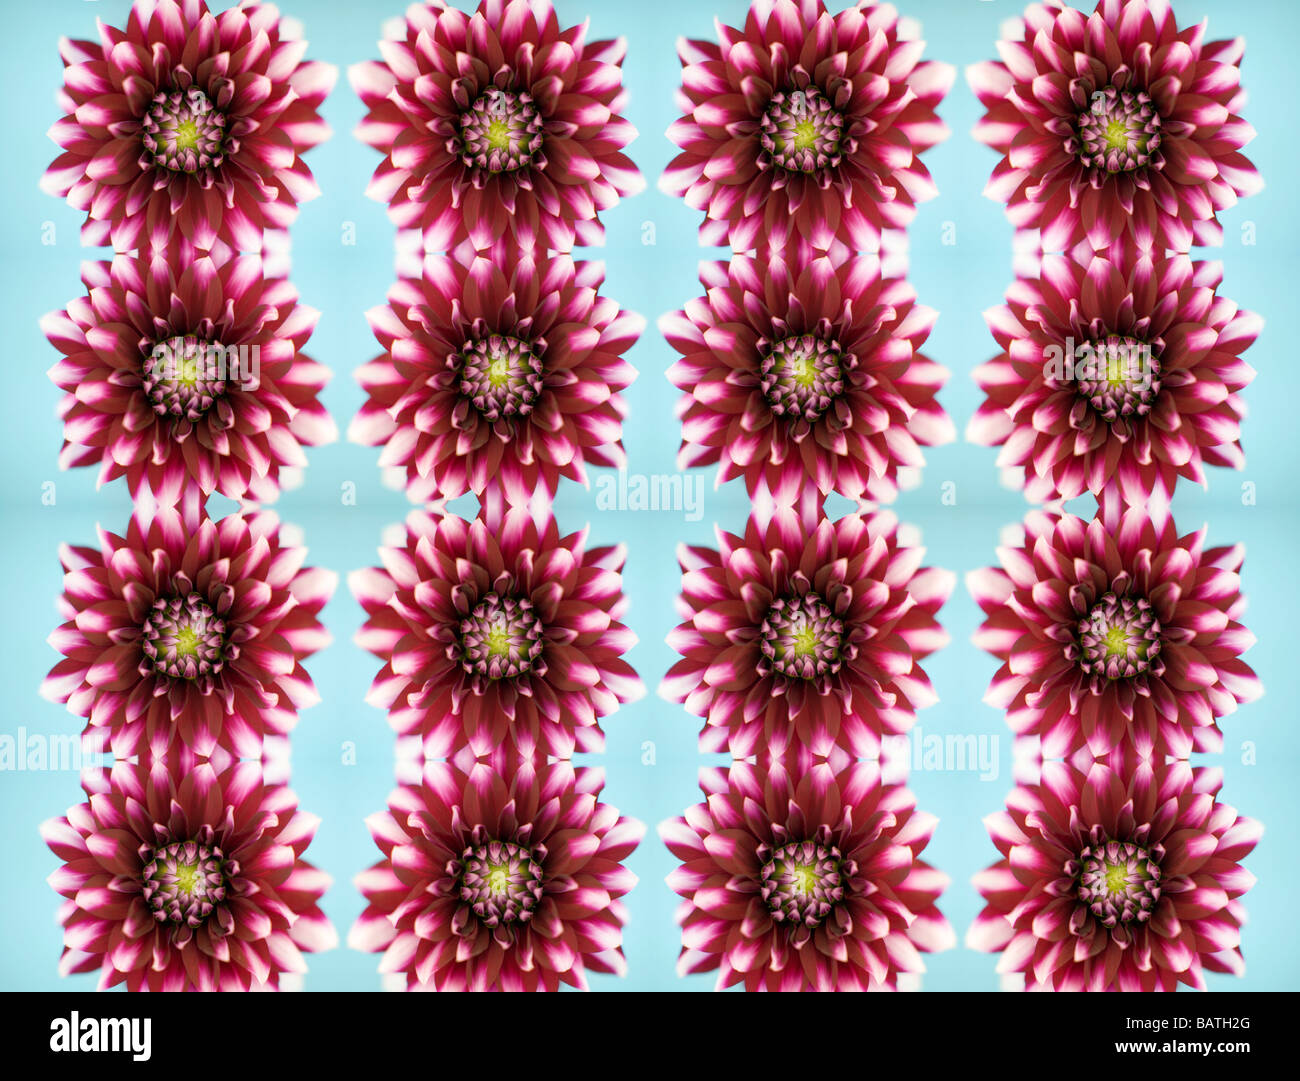 Dahlia fleurs, image abstraite. Photo Stock